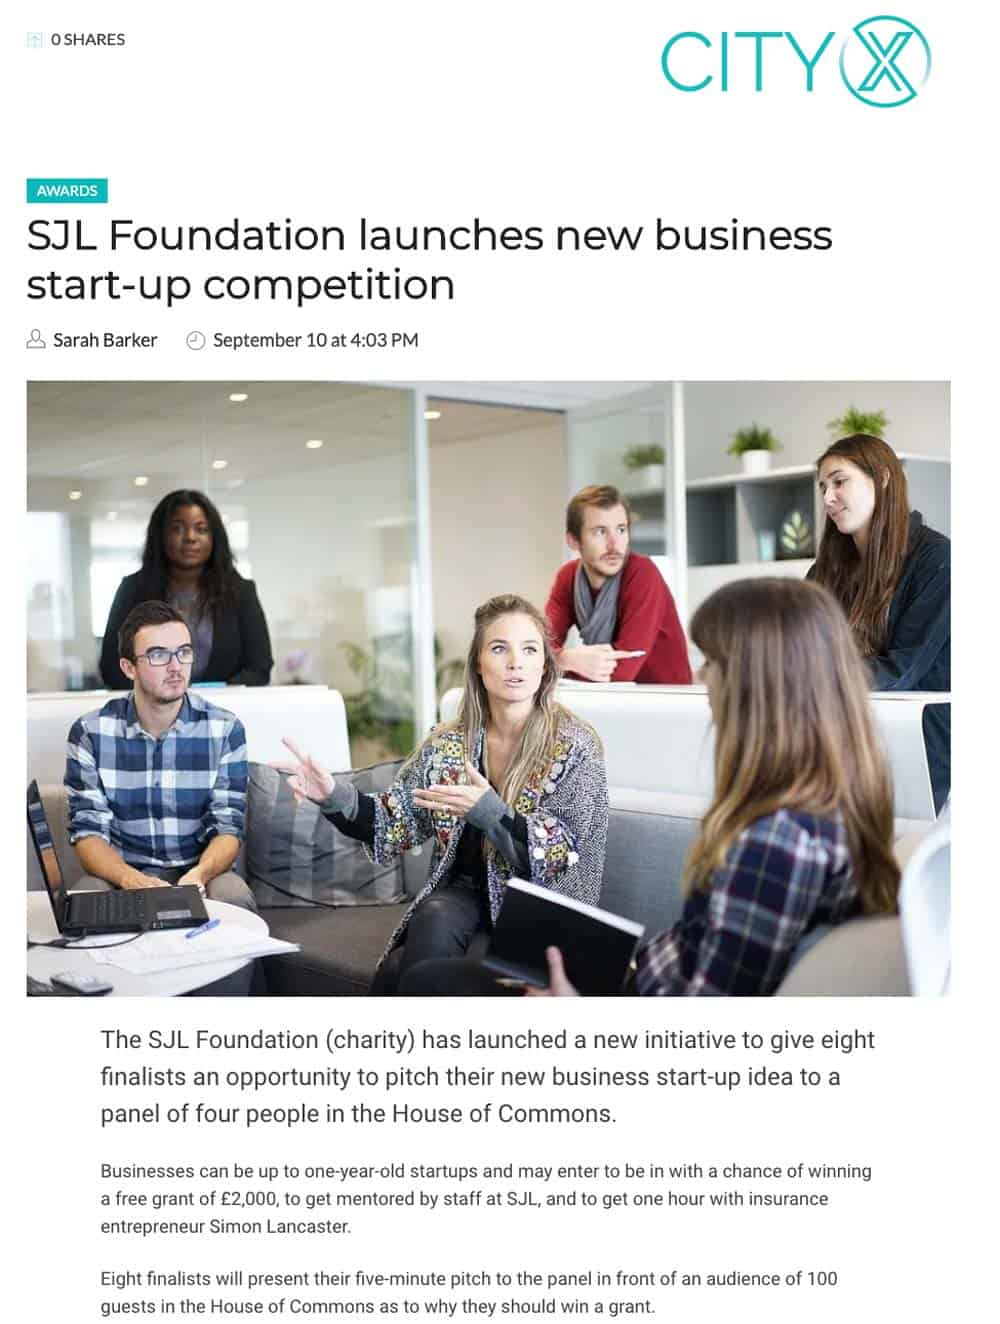 SJL-Foundation-CityX-Start-Up-Business-Competition